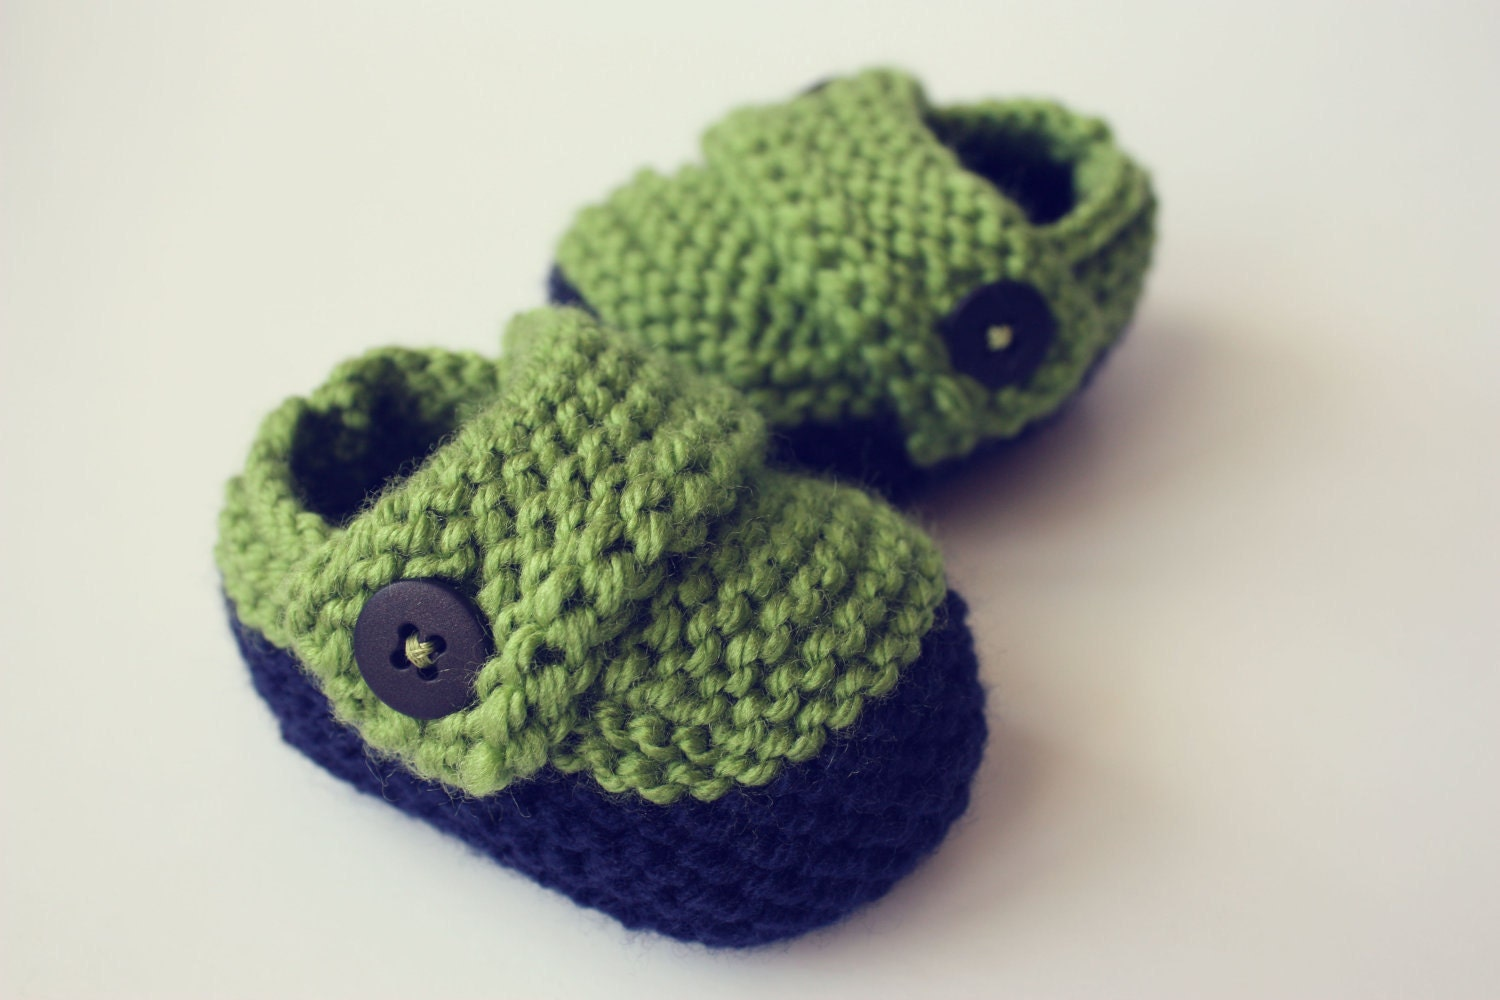 Knitting Shoes For Baby : Knit baby boy shoe pdf pattern instant by elephantshoesknits